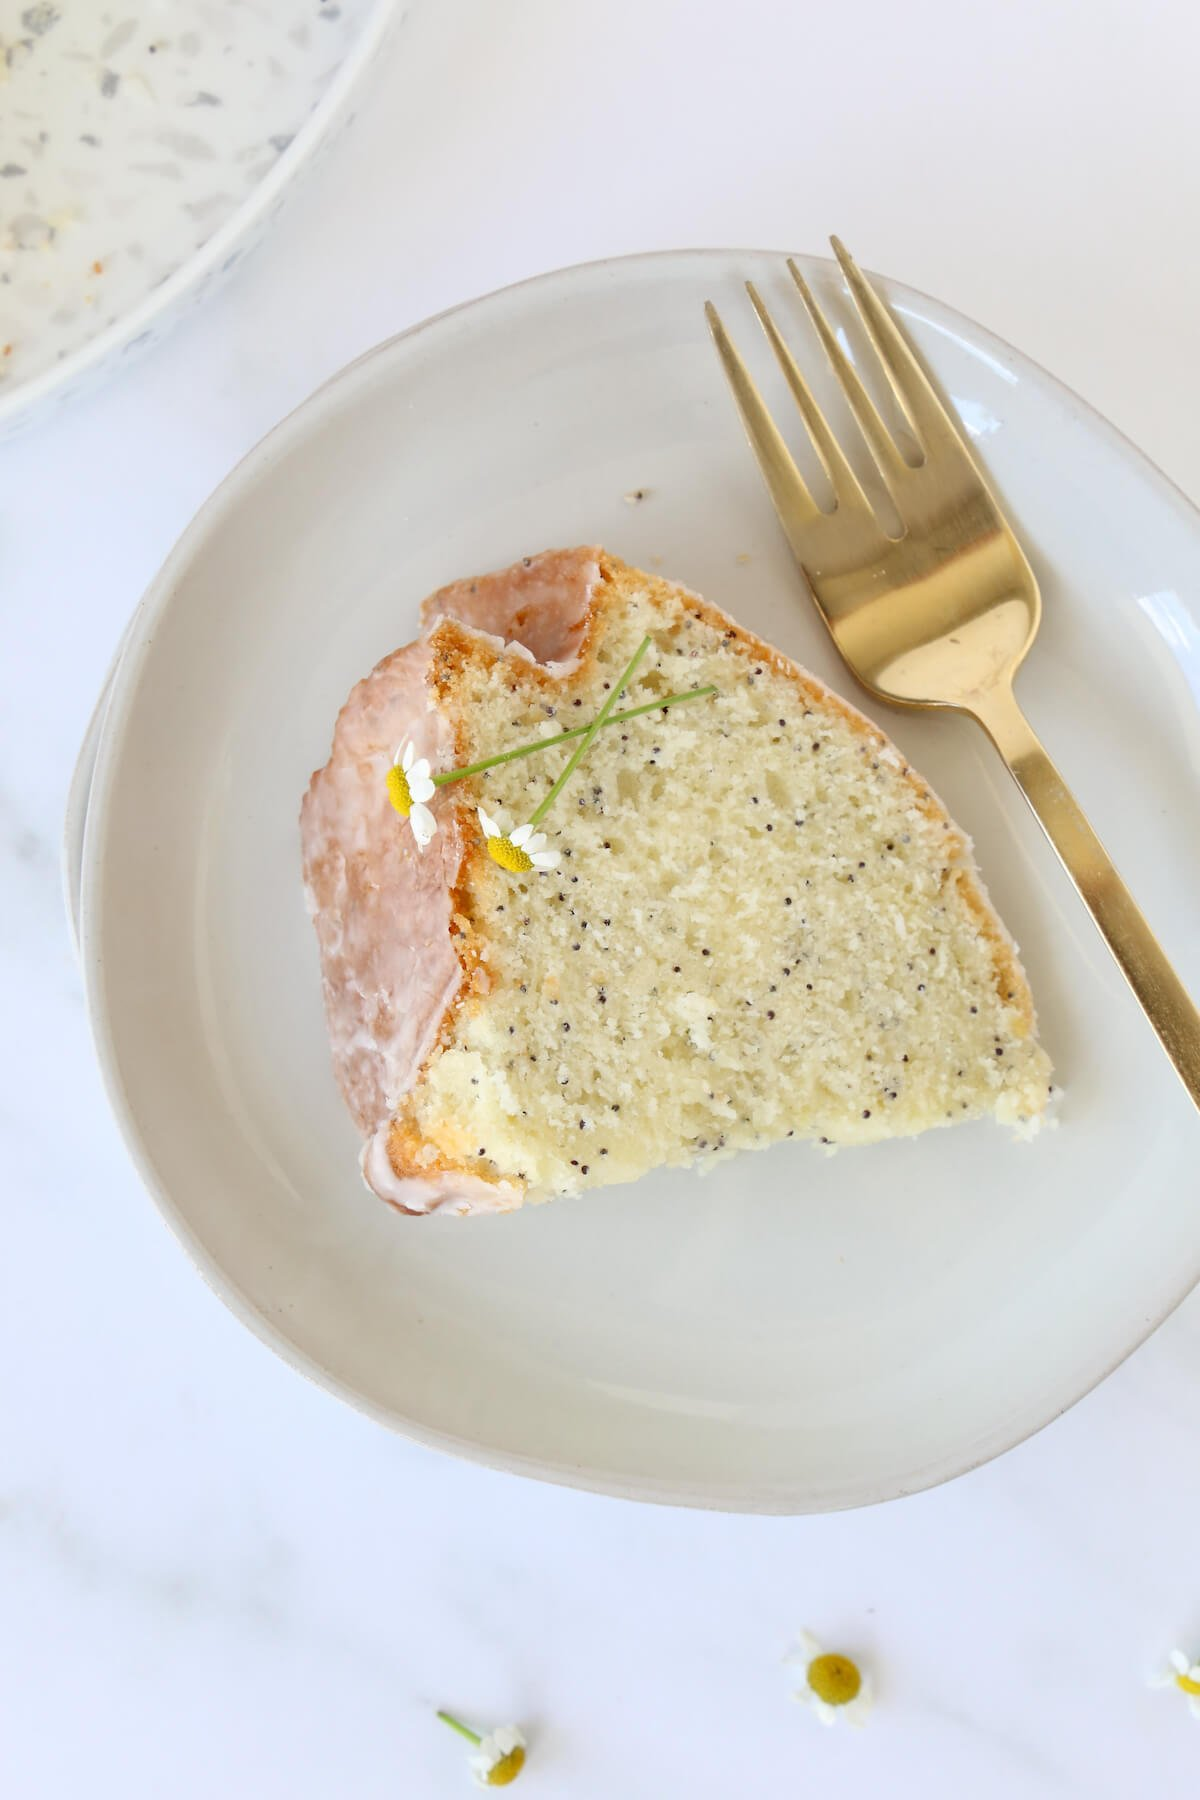 A Slice of lemon cake on a plate with a gold fork.